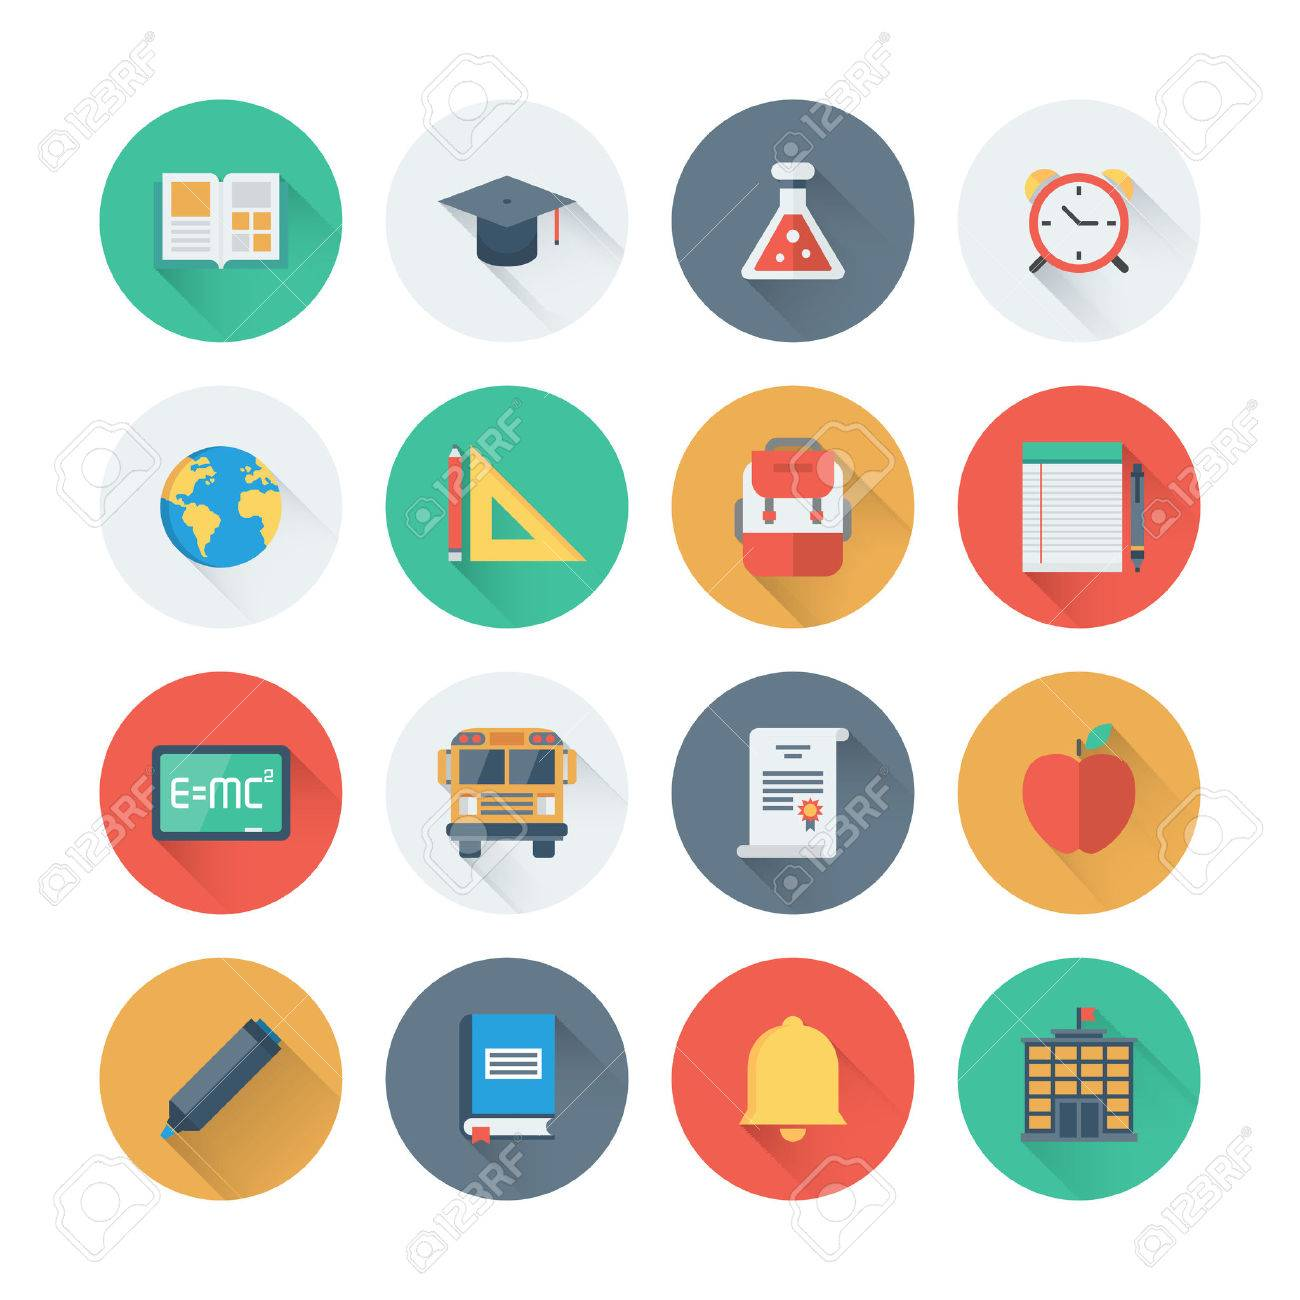 Pixel perfect flat icons set with long shadow effect of elementary school objects and education items, learning symbol and student equipment. Flat design style modern pictogram collection. Isolated on white background. Stock Vector - 33020838